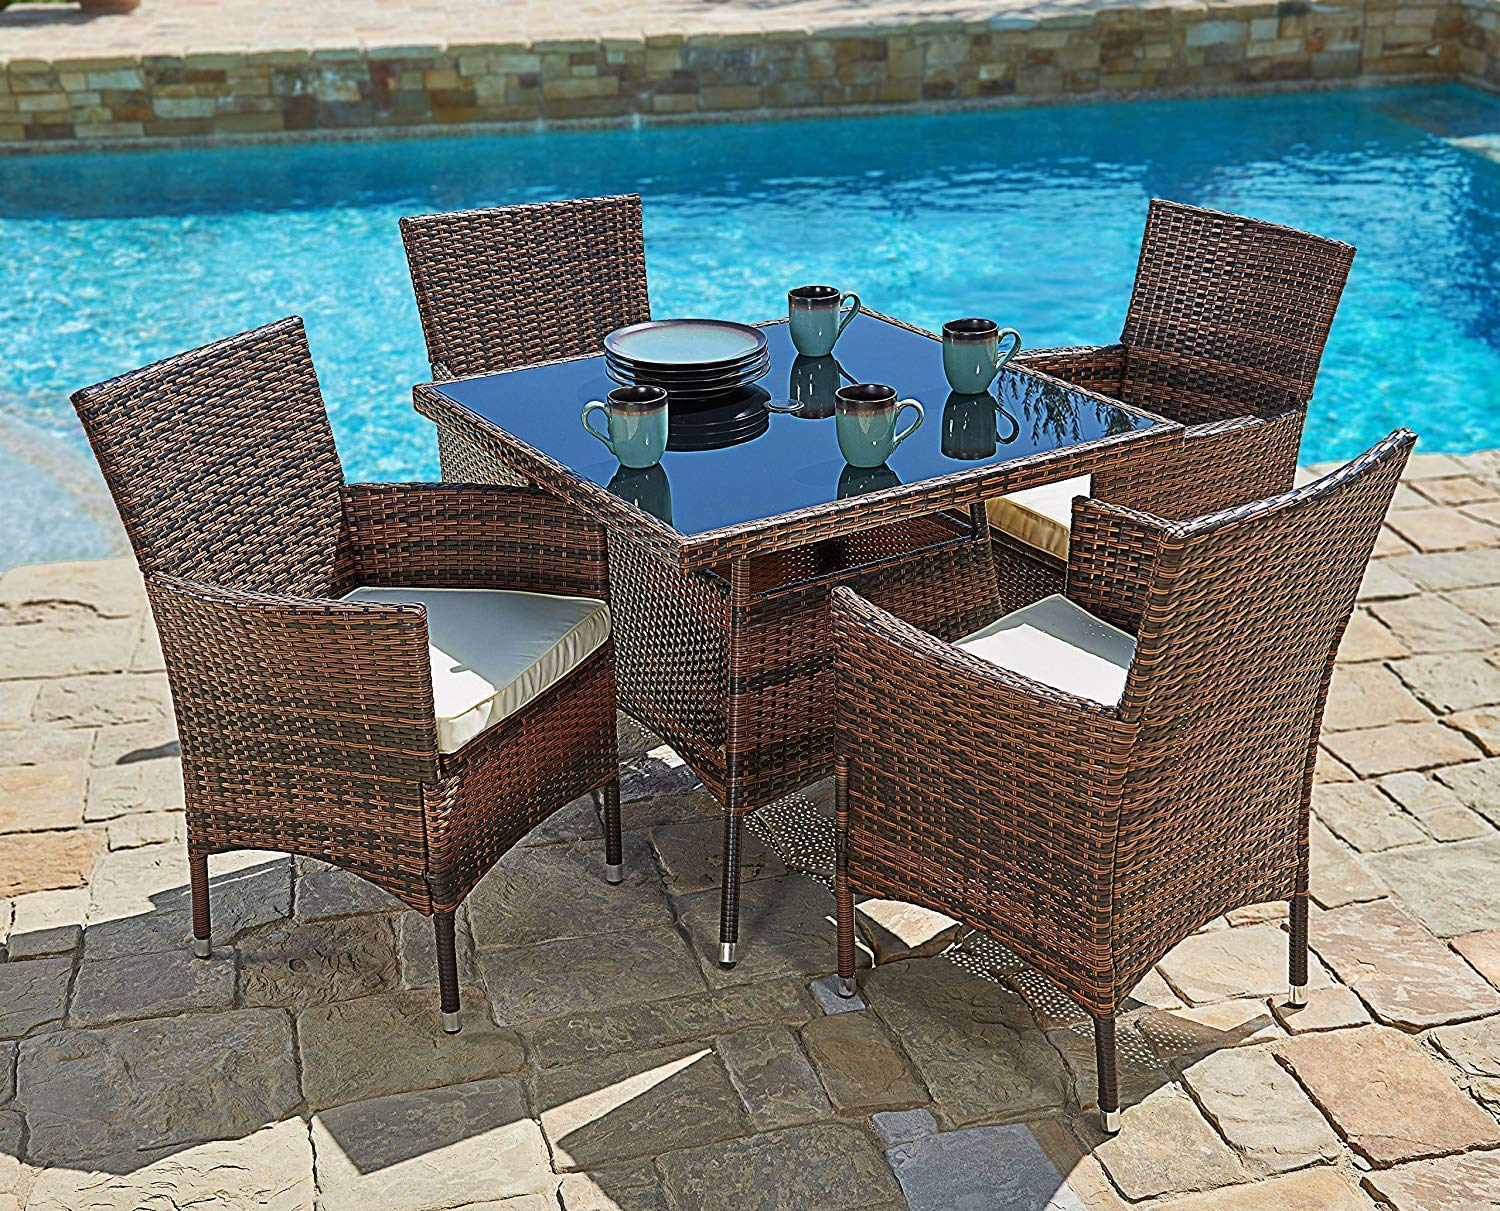 Suncrown outdoor dining set brown wicker furniture 5 piece square dining table and chairs w washable cushions patio backyard porch garden